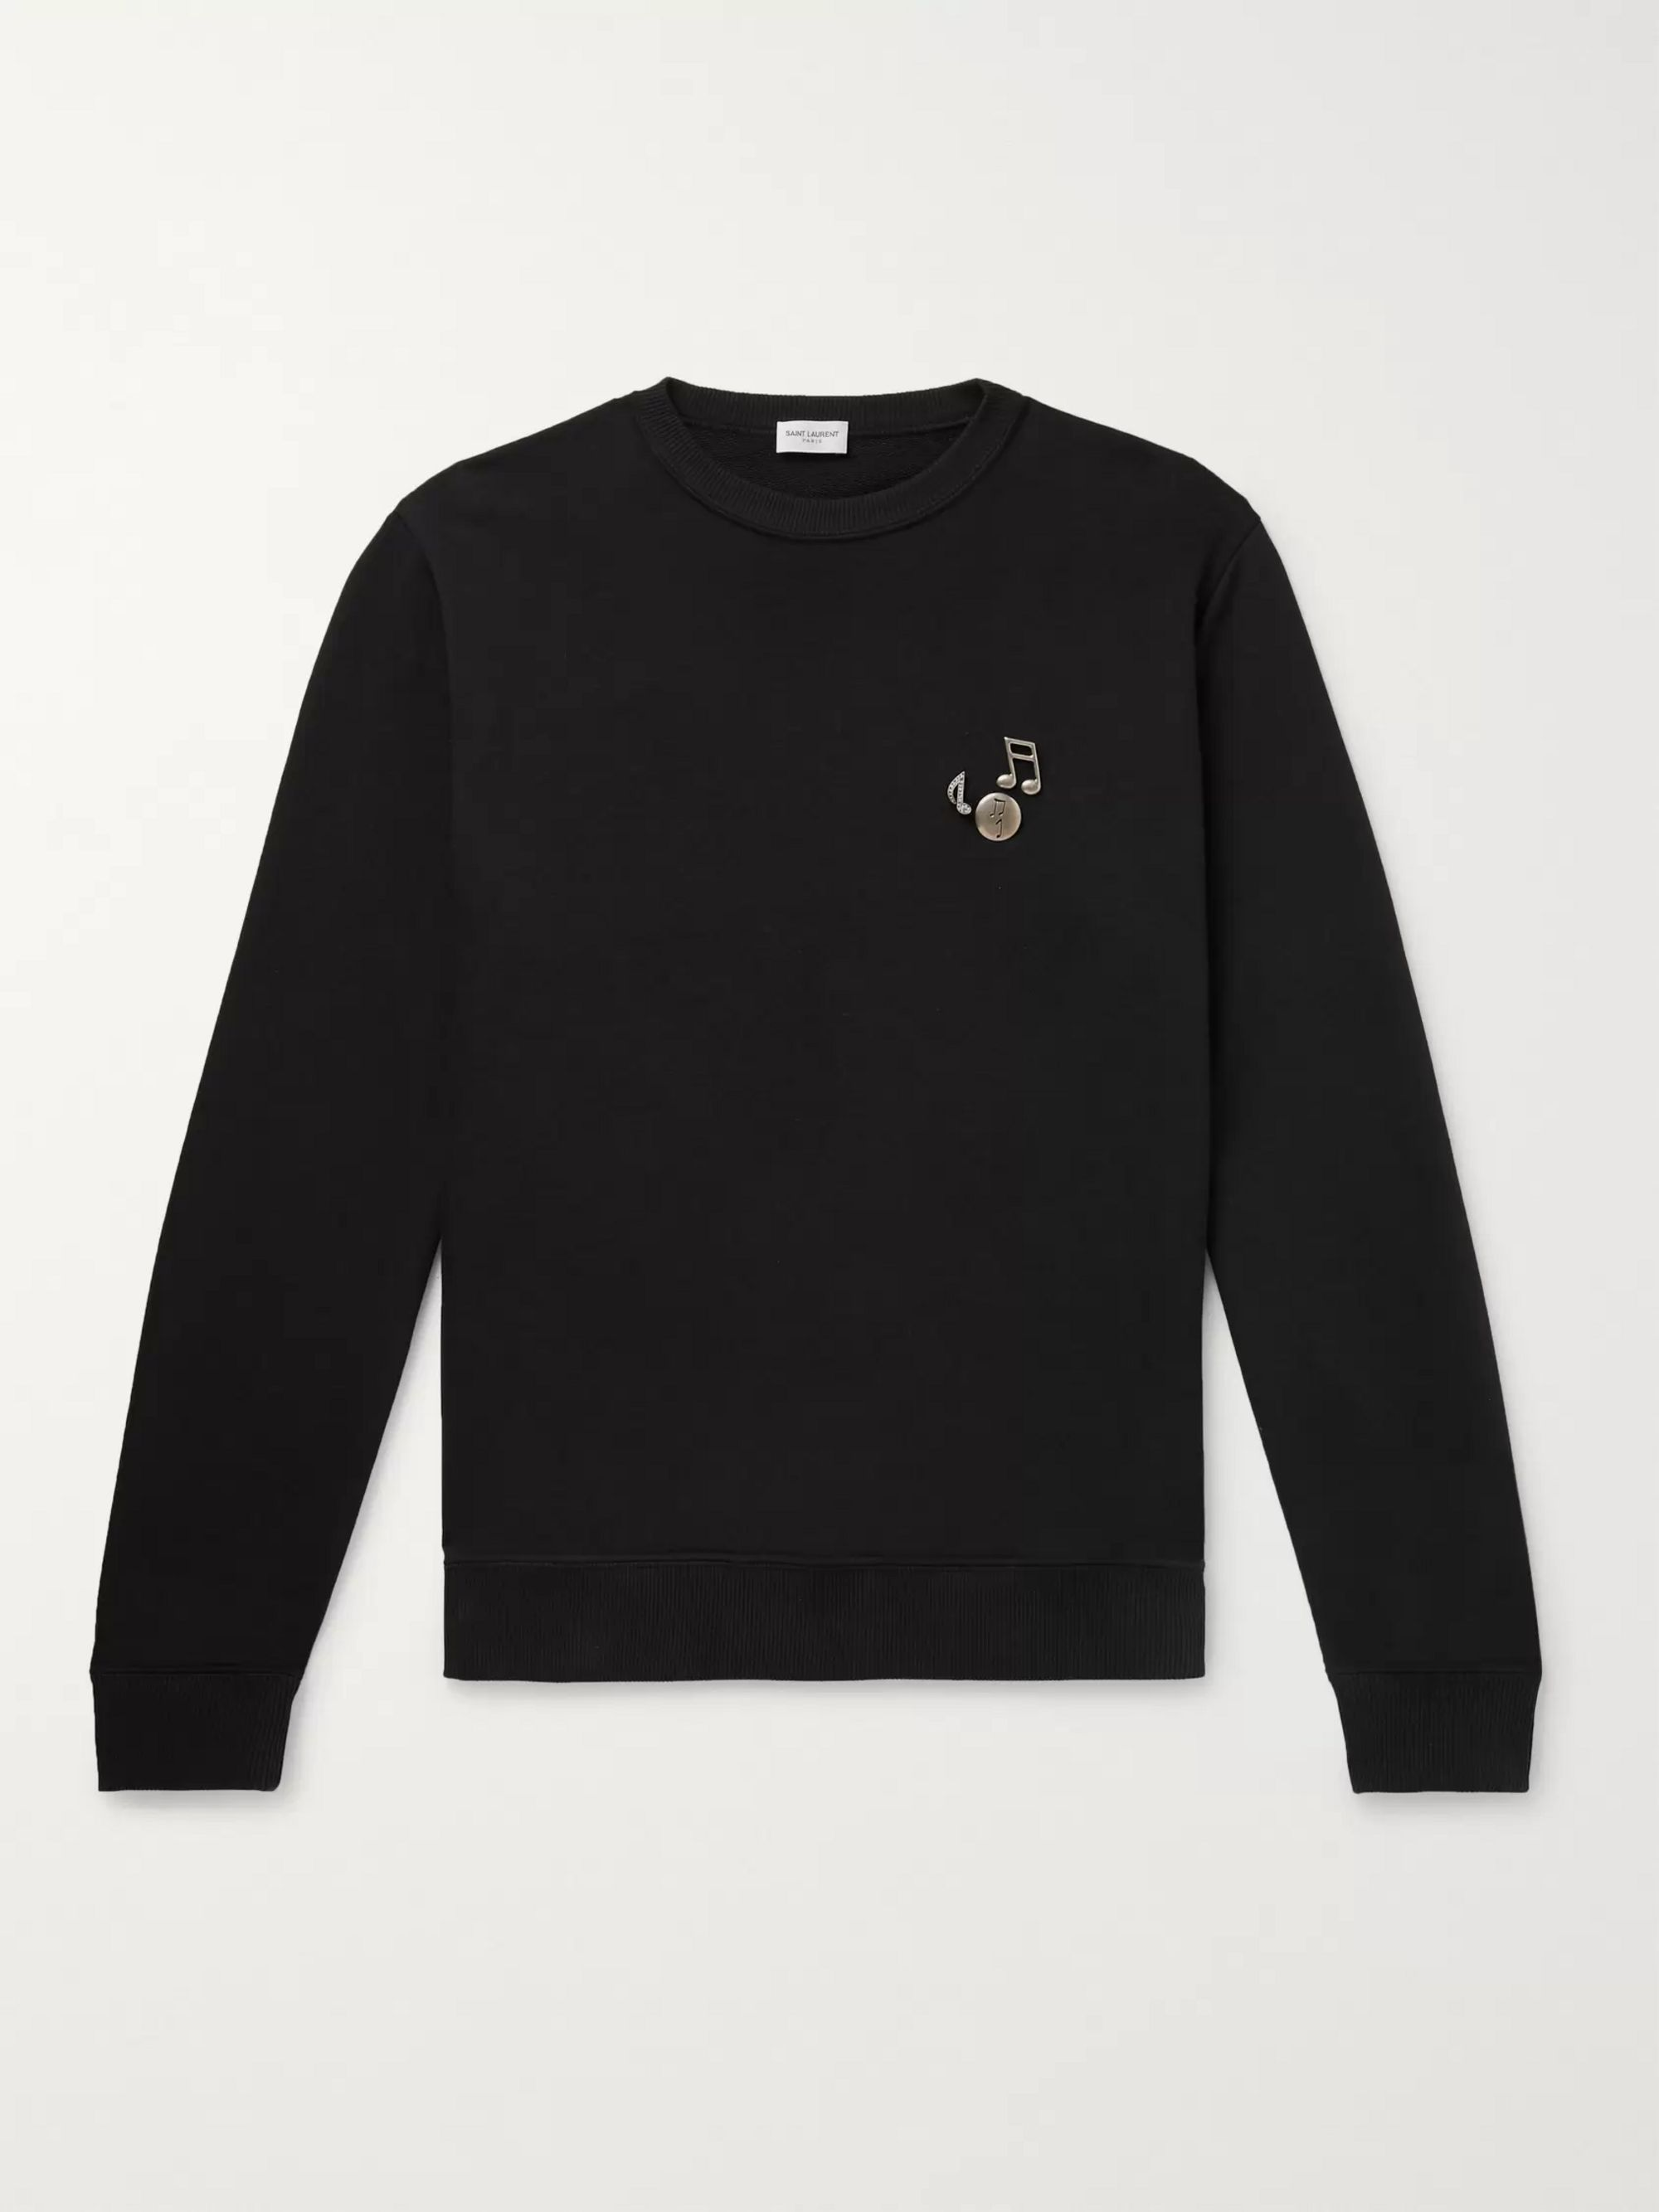 Saint Laurent Embellished Loopback Cotton-Jersey Sweatshirt